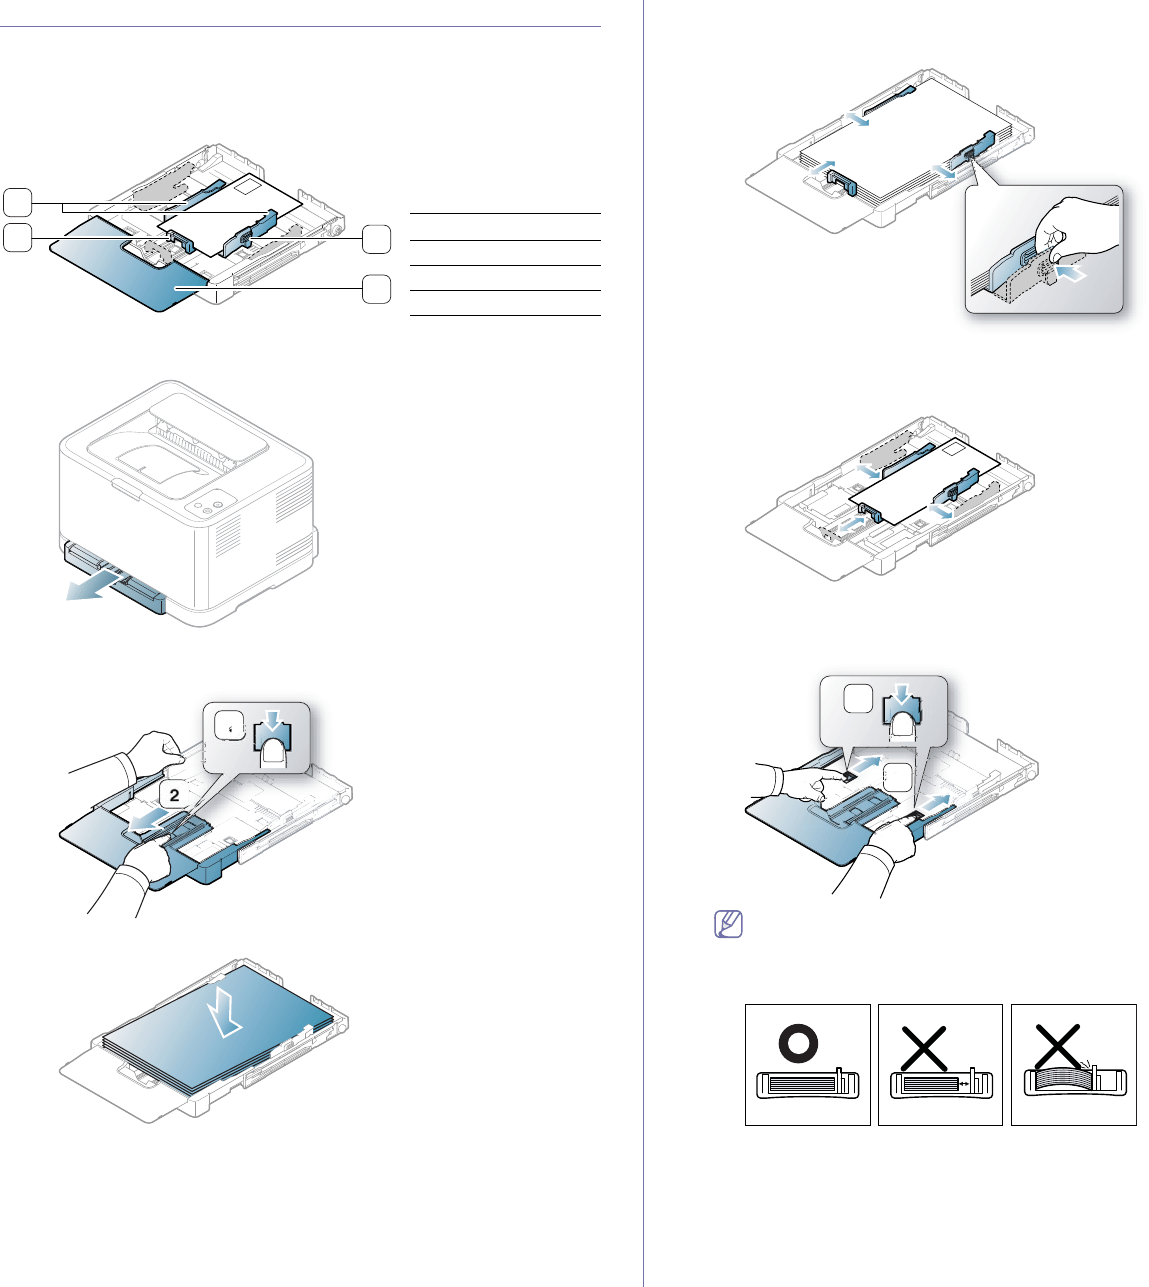 Samsung CLP-320, CLP-325W Changing the tray size